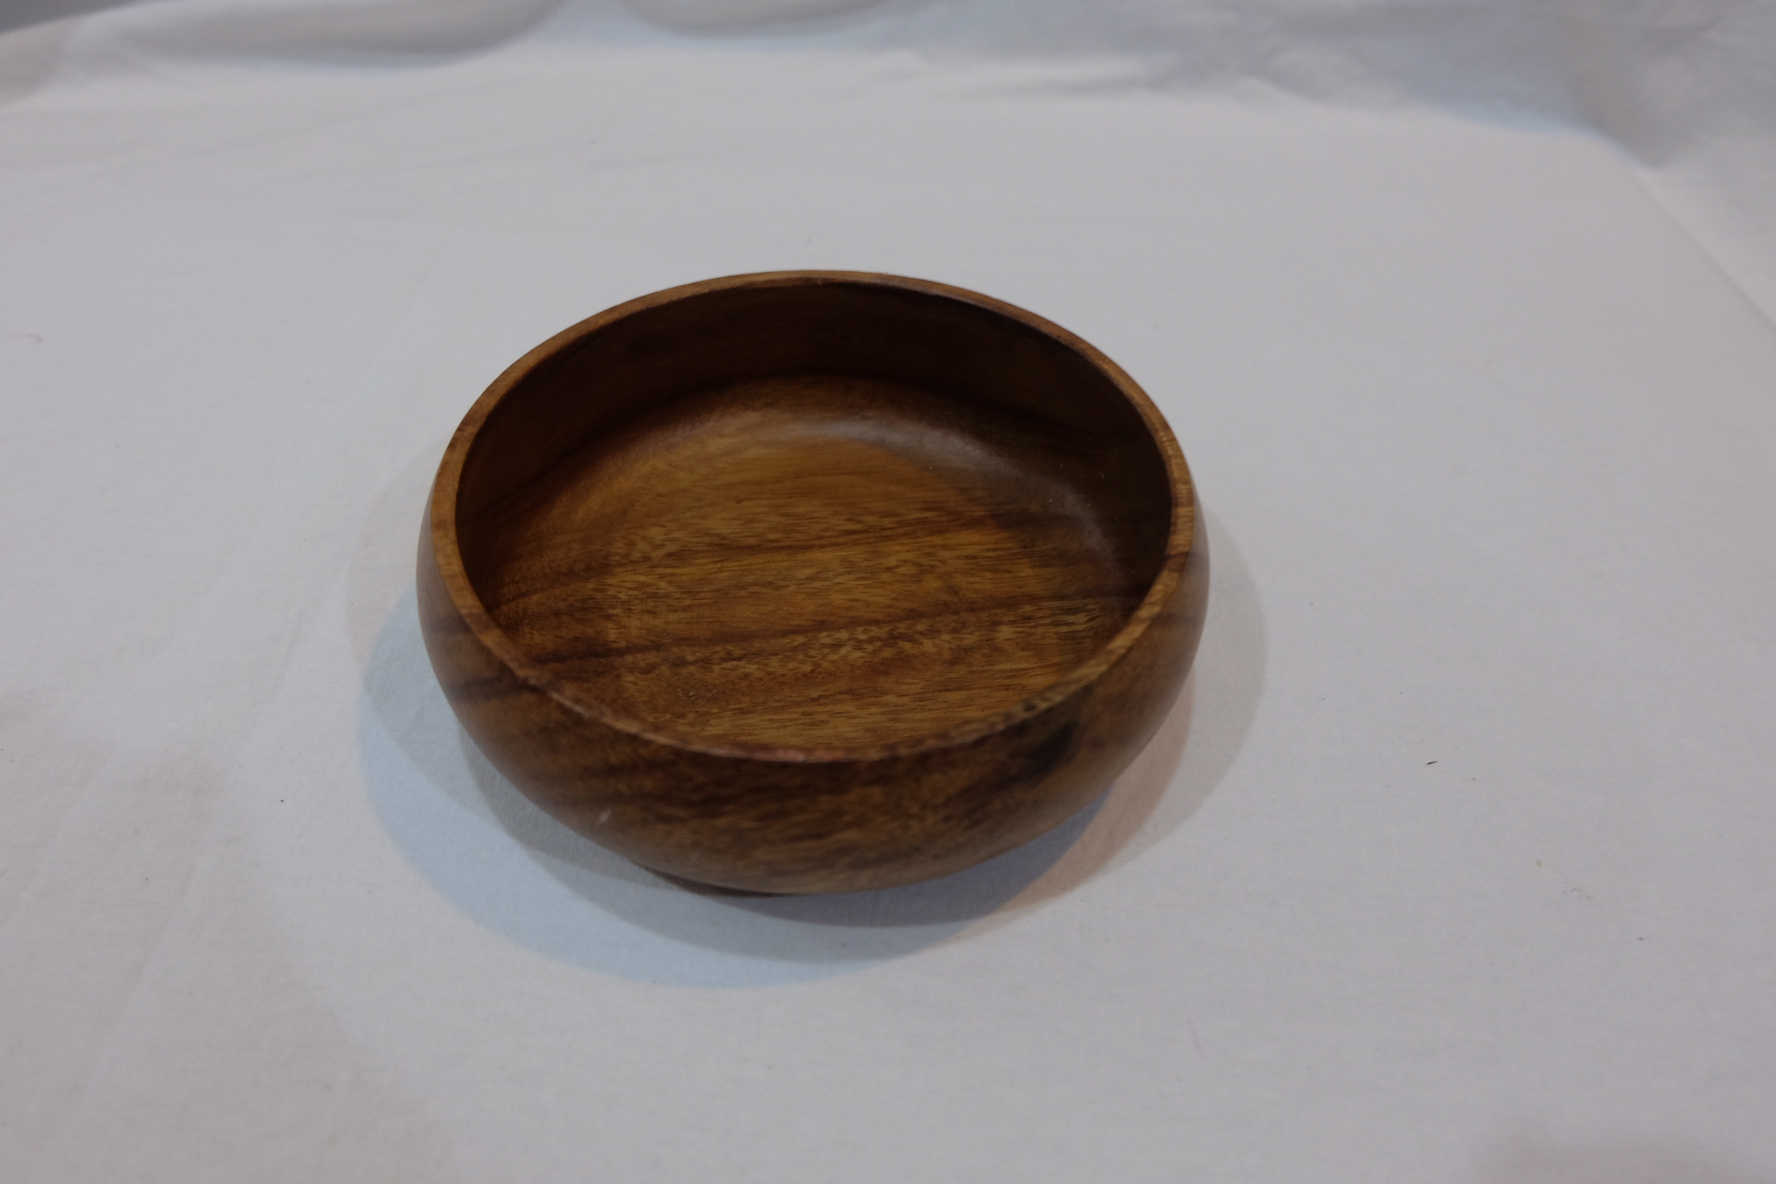 WOODEN BOWL S$3.00